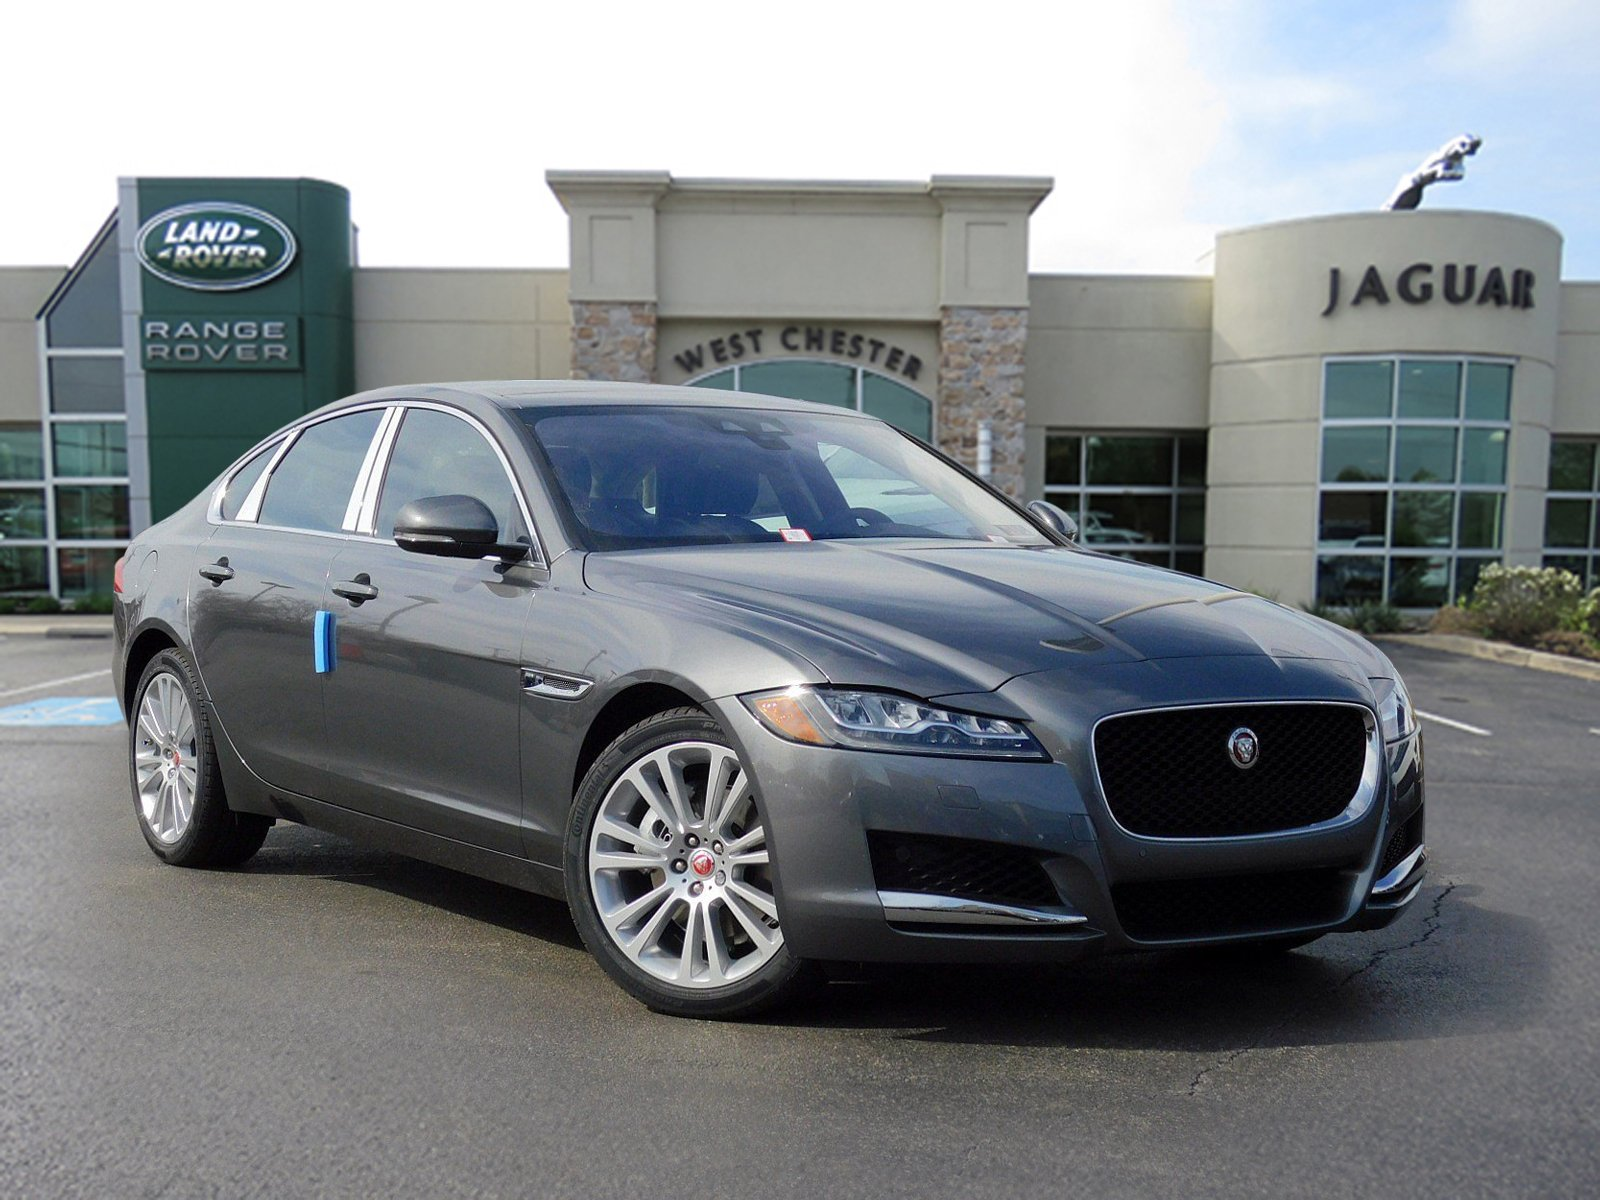 s inventory in sportbrake wheel drive xf all jaguar annapolis awd wagon new